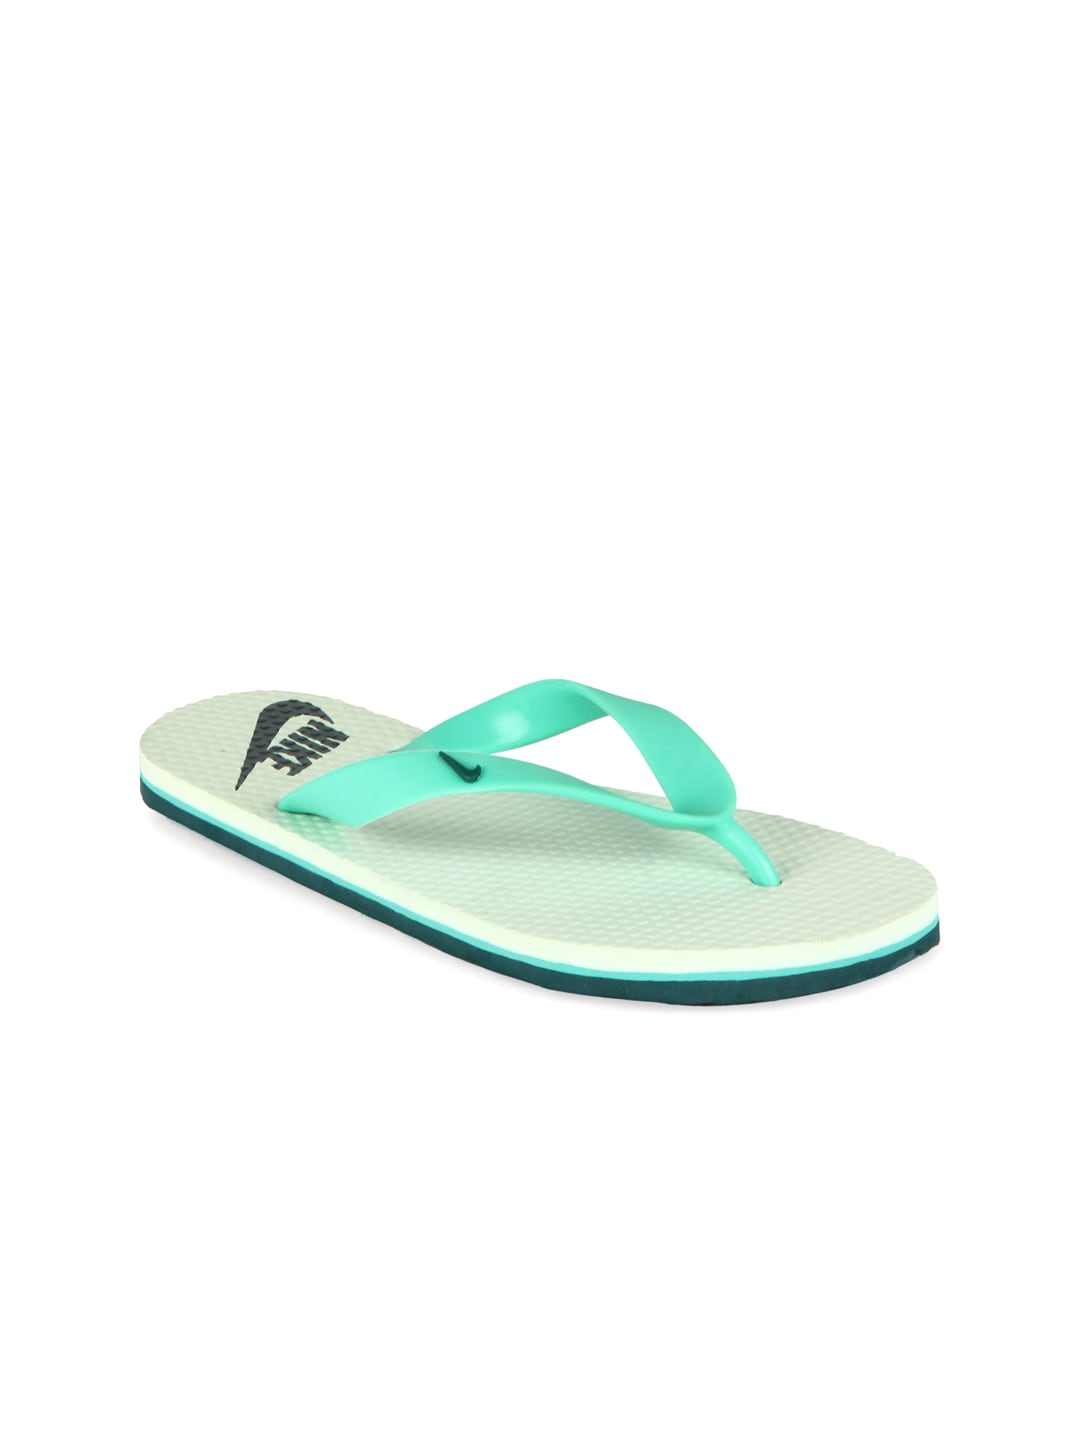 b53b1d8a6 Nike 518227-304 Neon Green Aquahype Flip Flops - Best Price in India ...